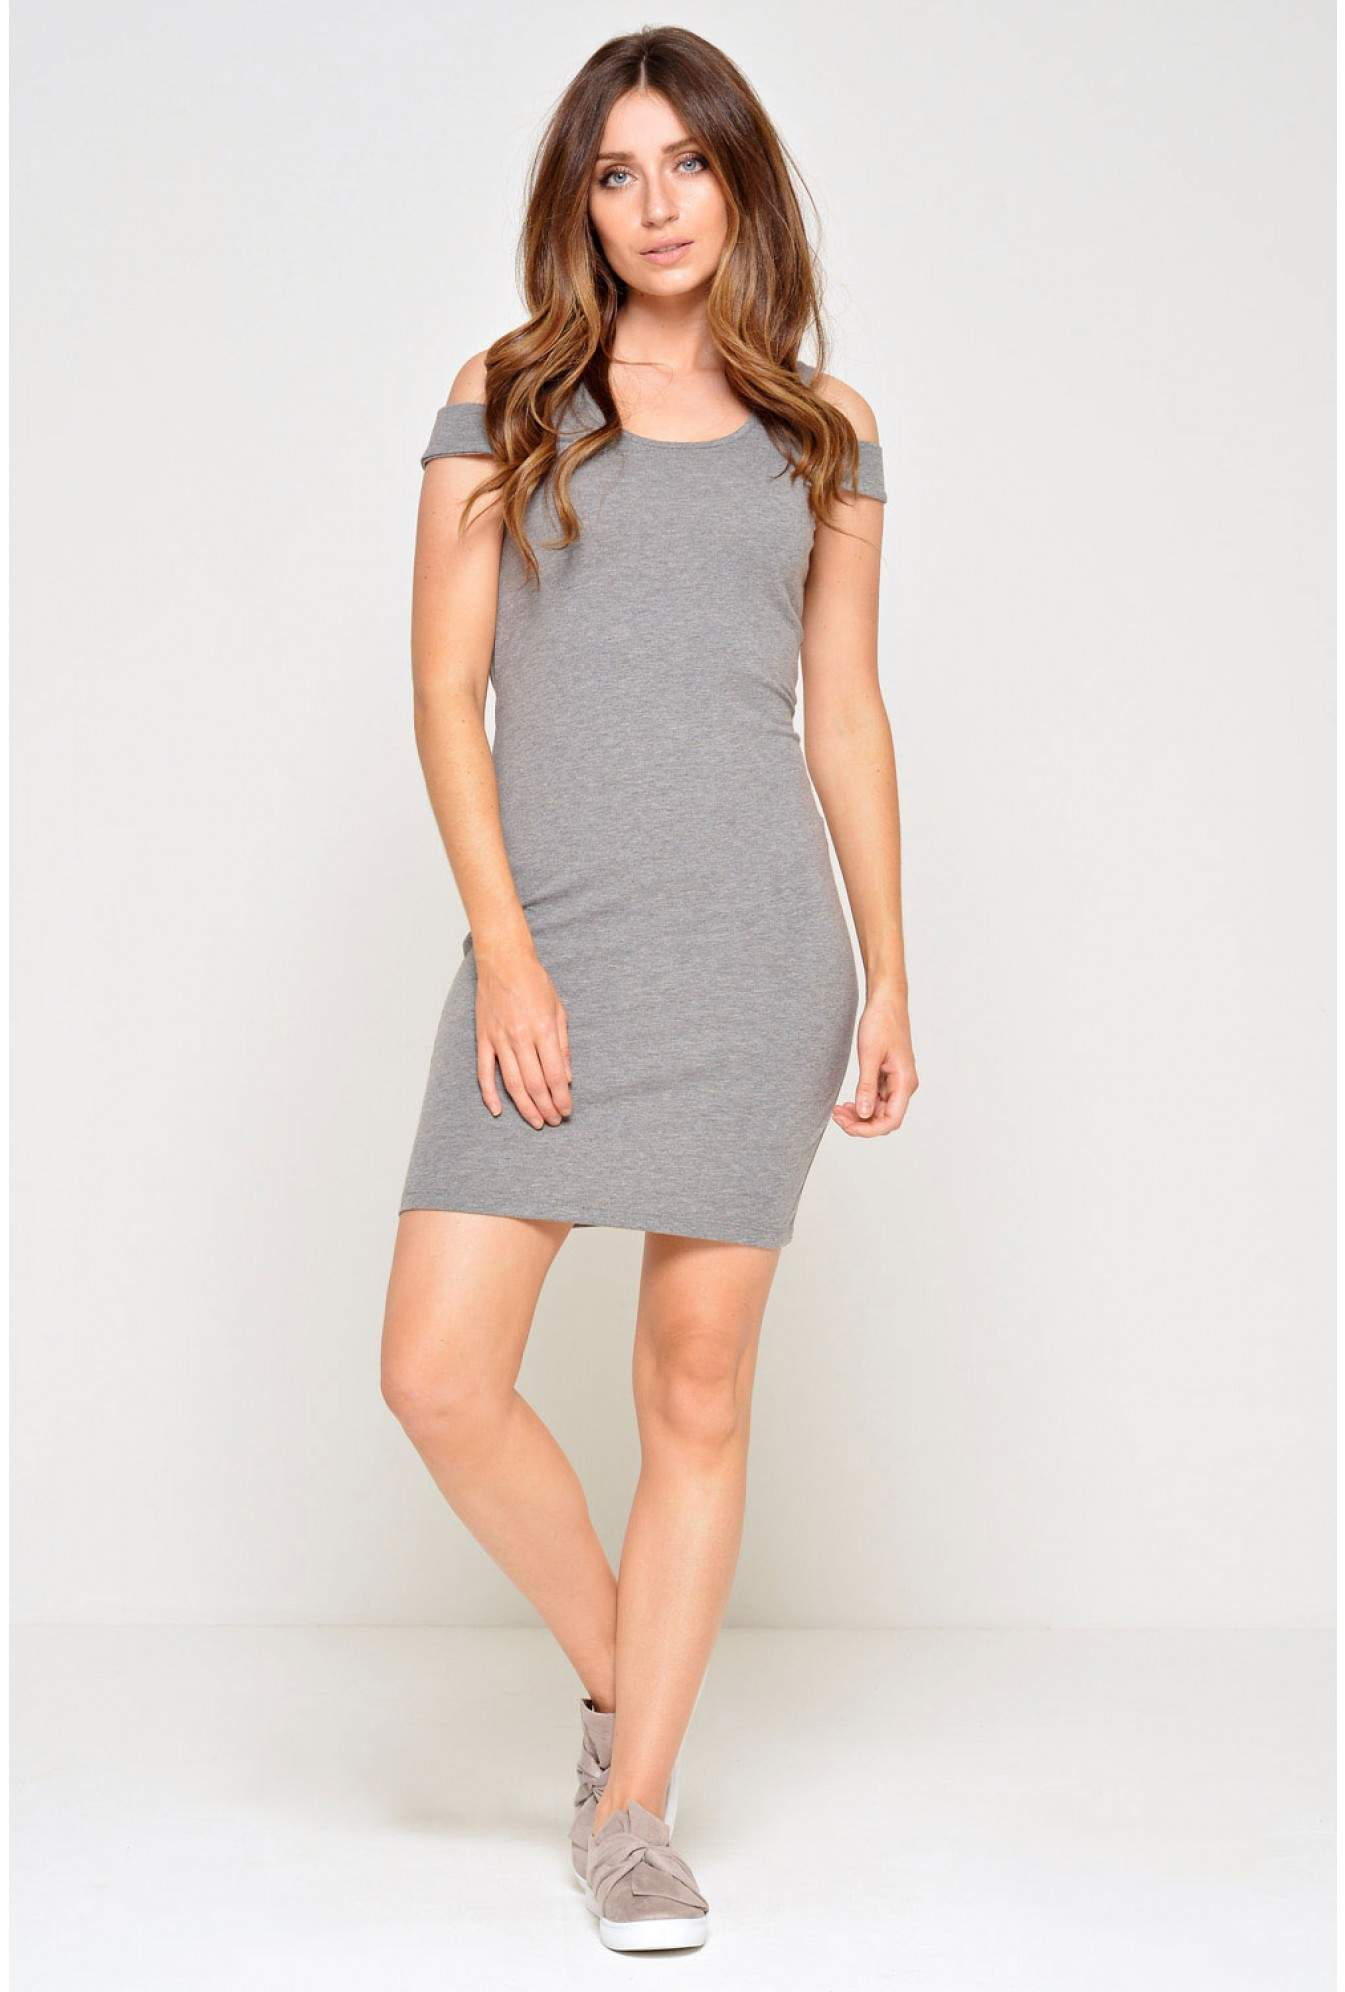 2453c3547e44 More Views. Laila Cold Shoulder Short Dress in Grey. Noisy May